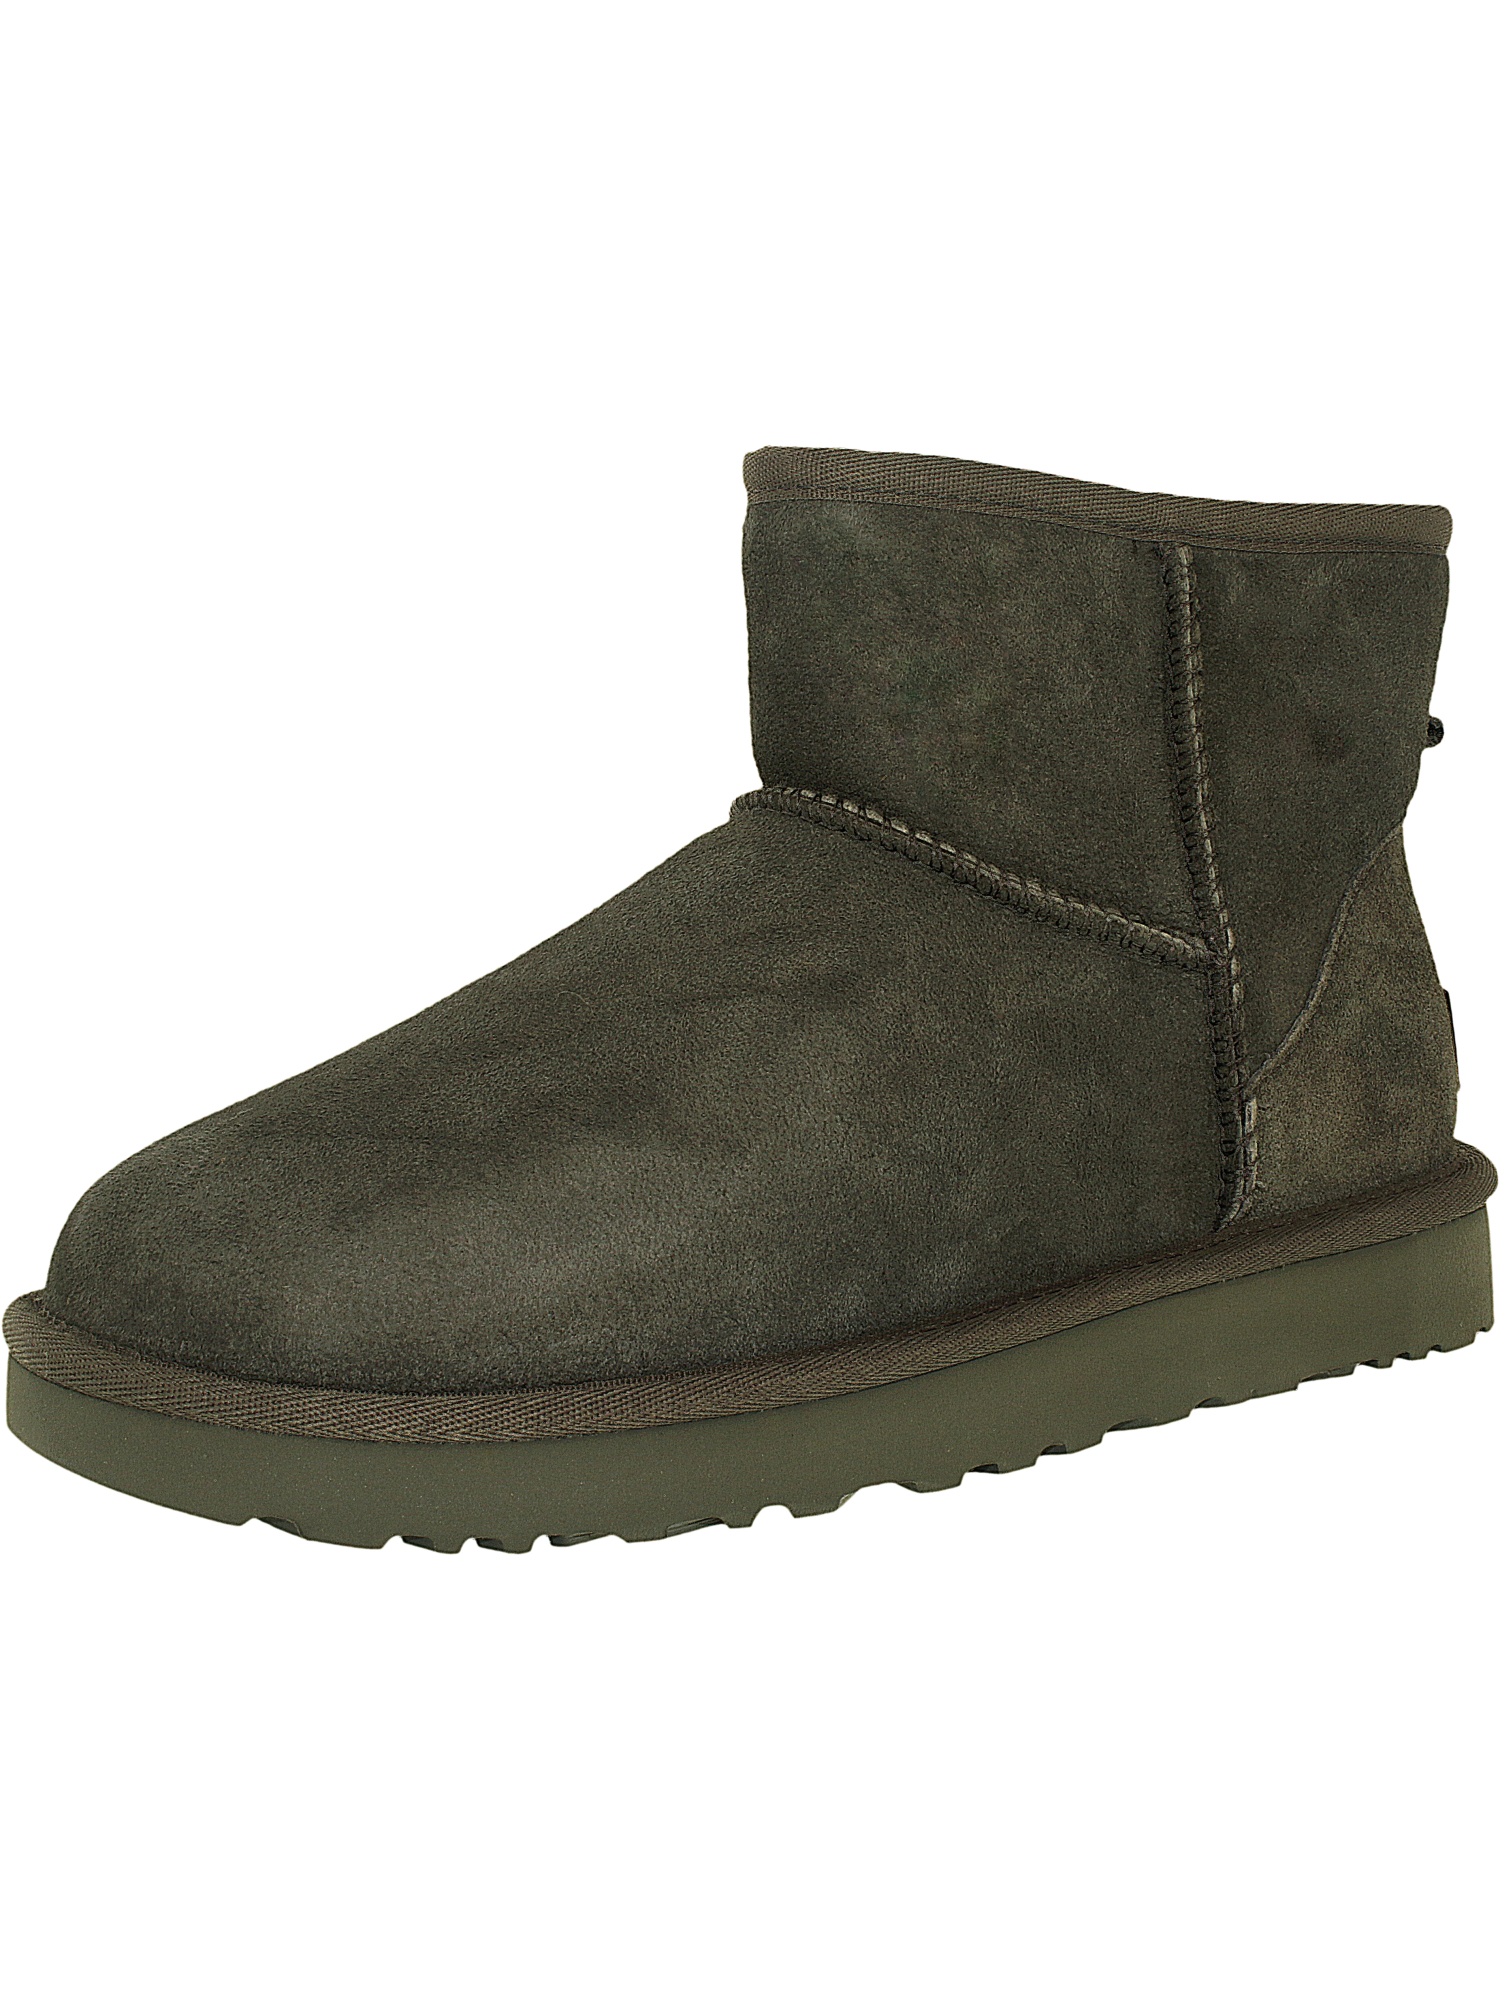 Ugg-Women-039-s-Classic-Mini-II-Leather-Ankle-High-Suede-Boot